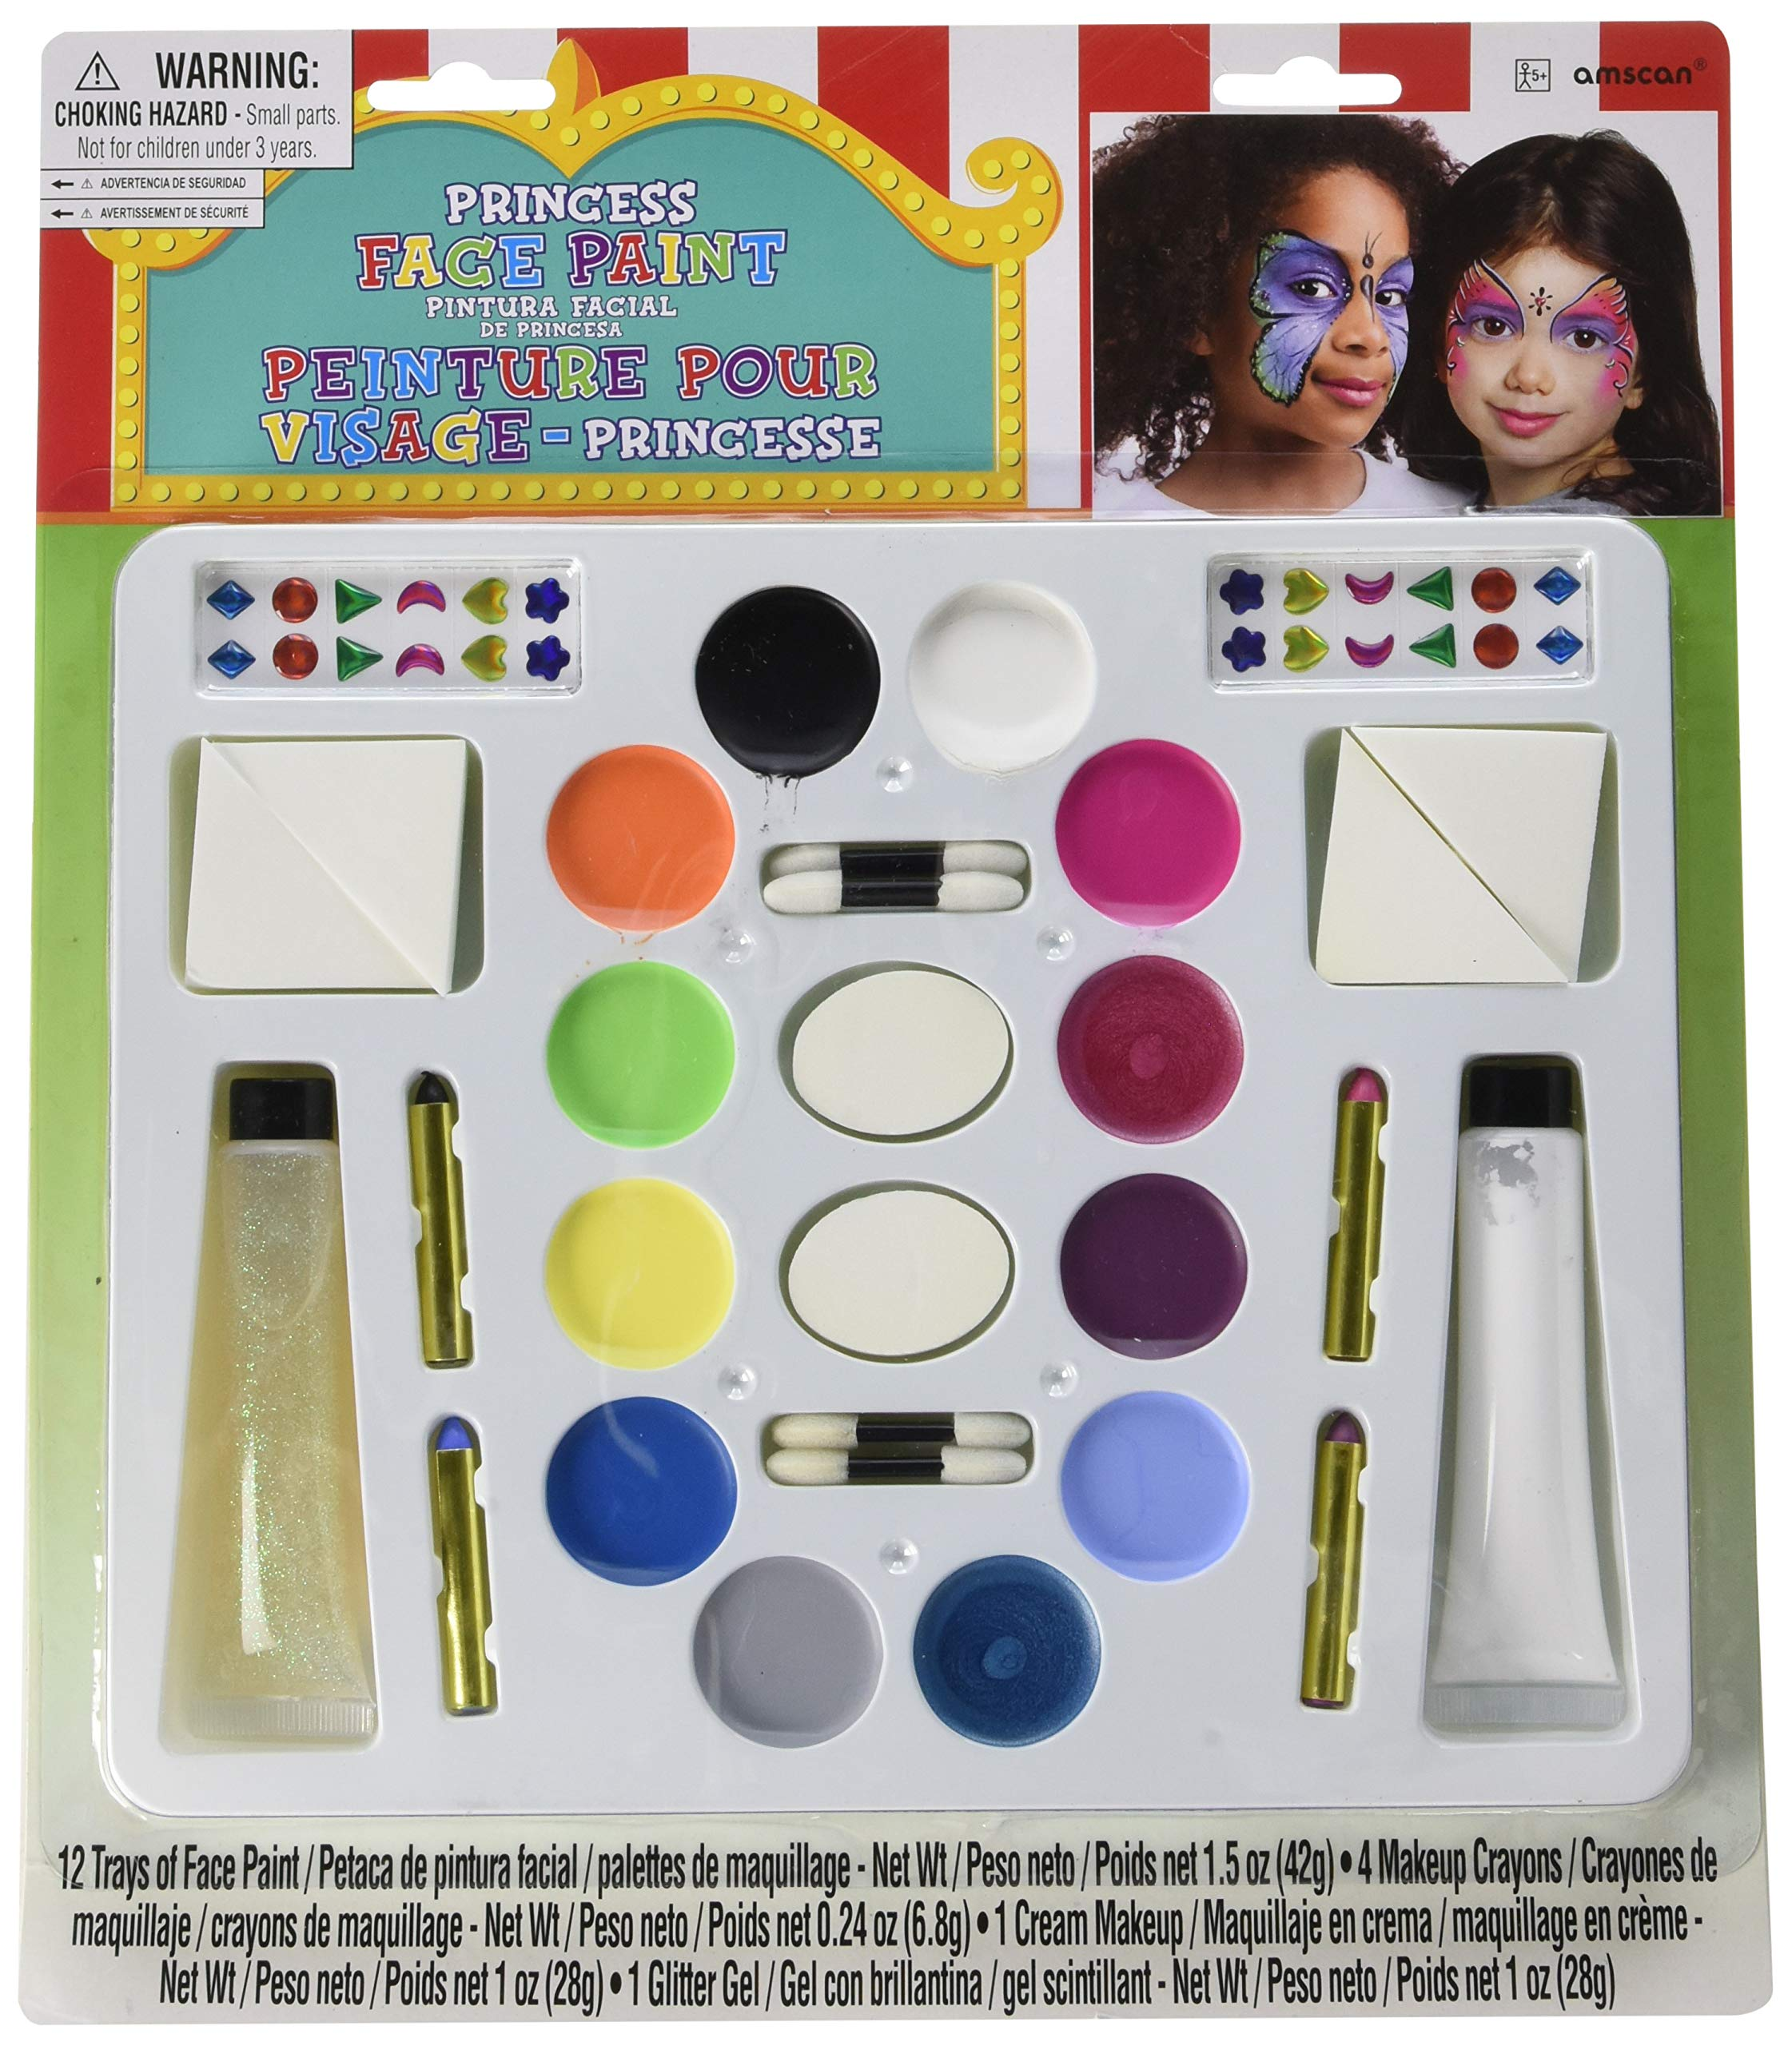 Princess Face and Body Paint Kit Deluxe | Game Collection | Party Accessory by amscan